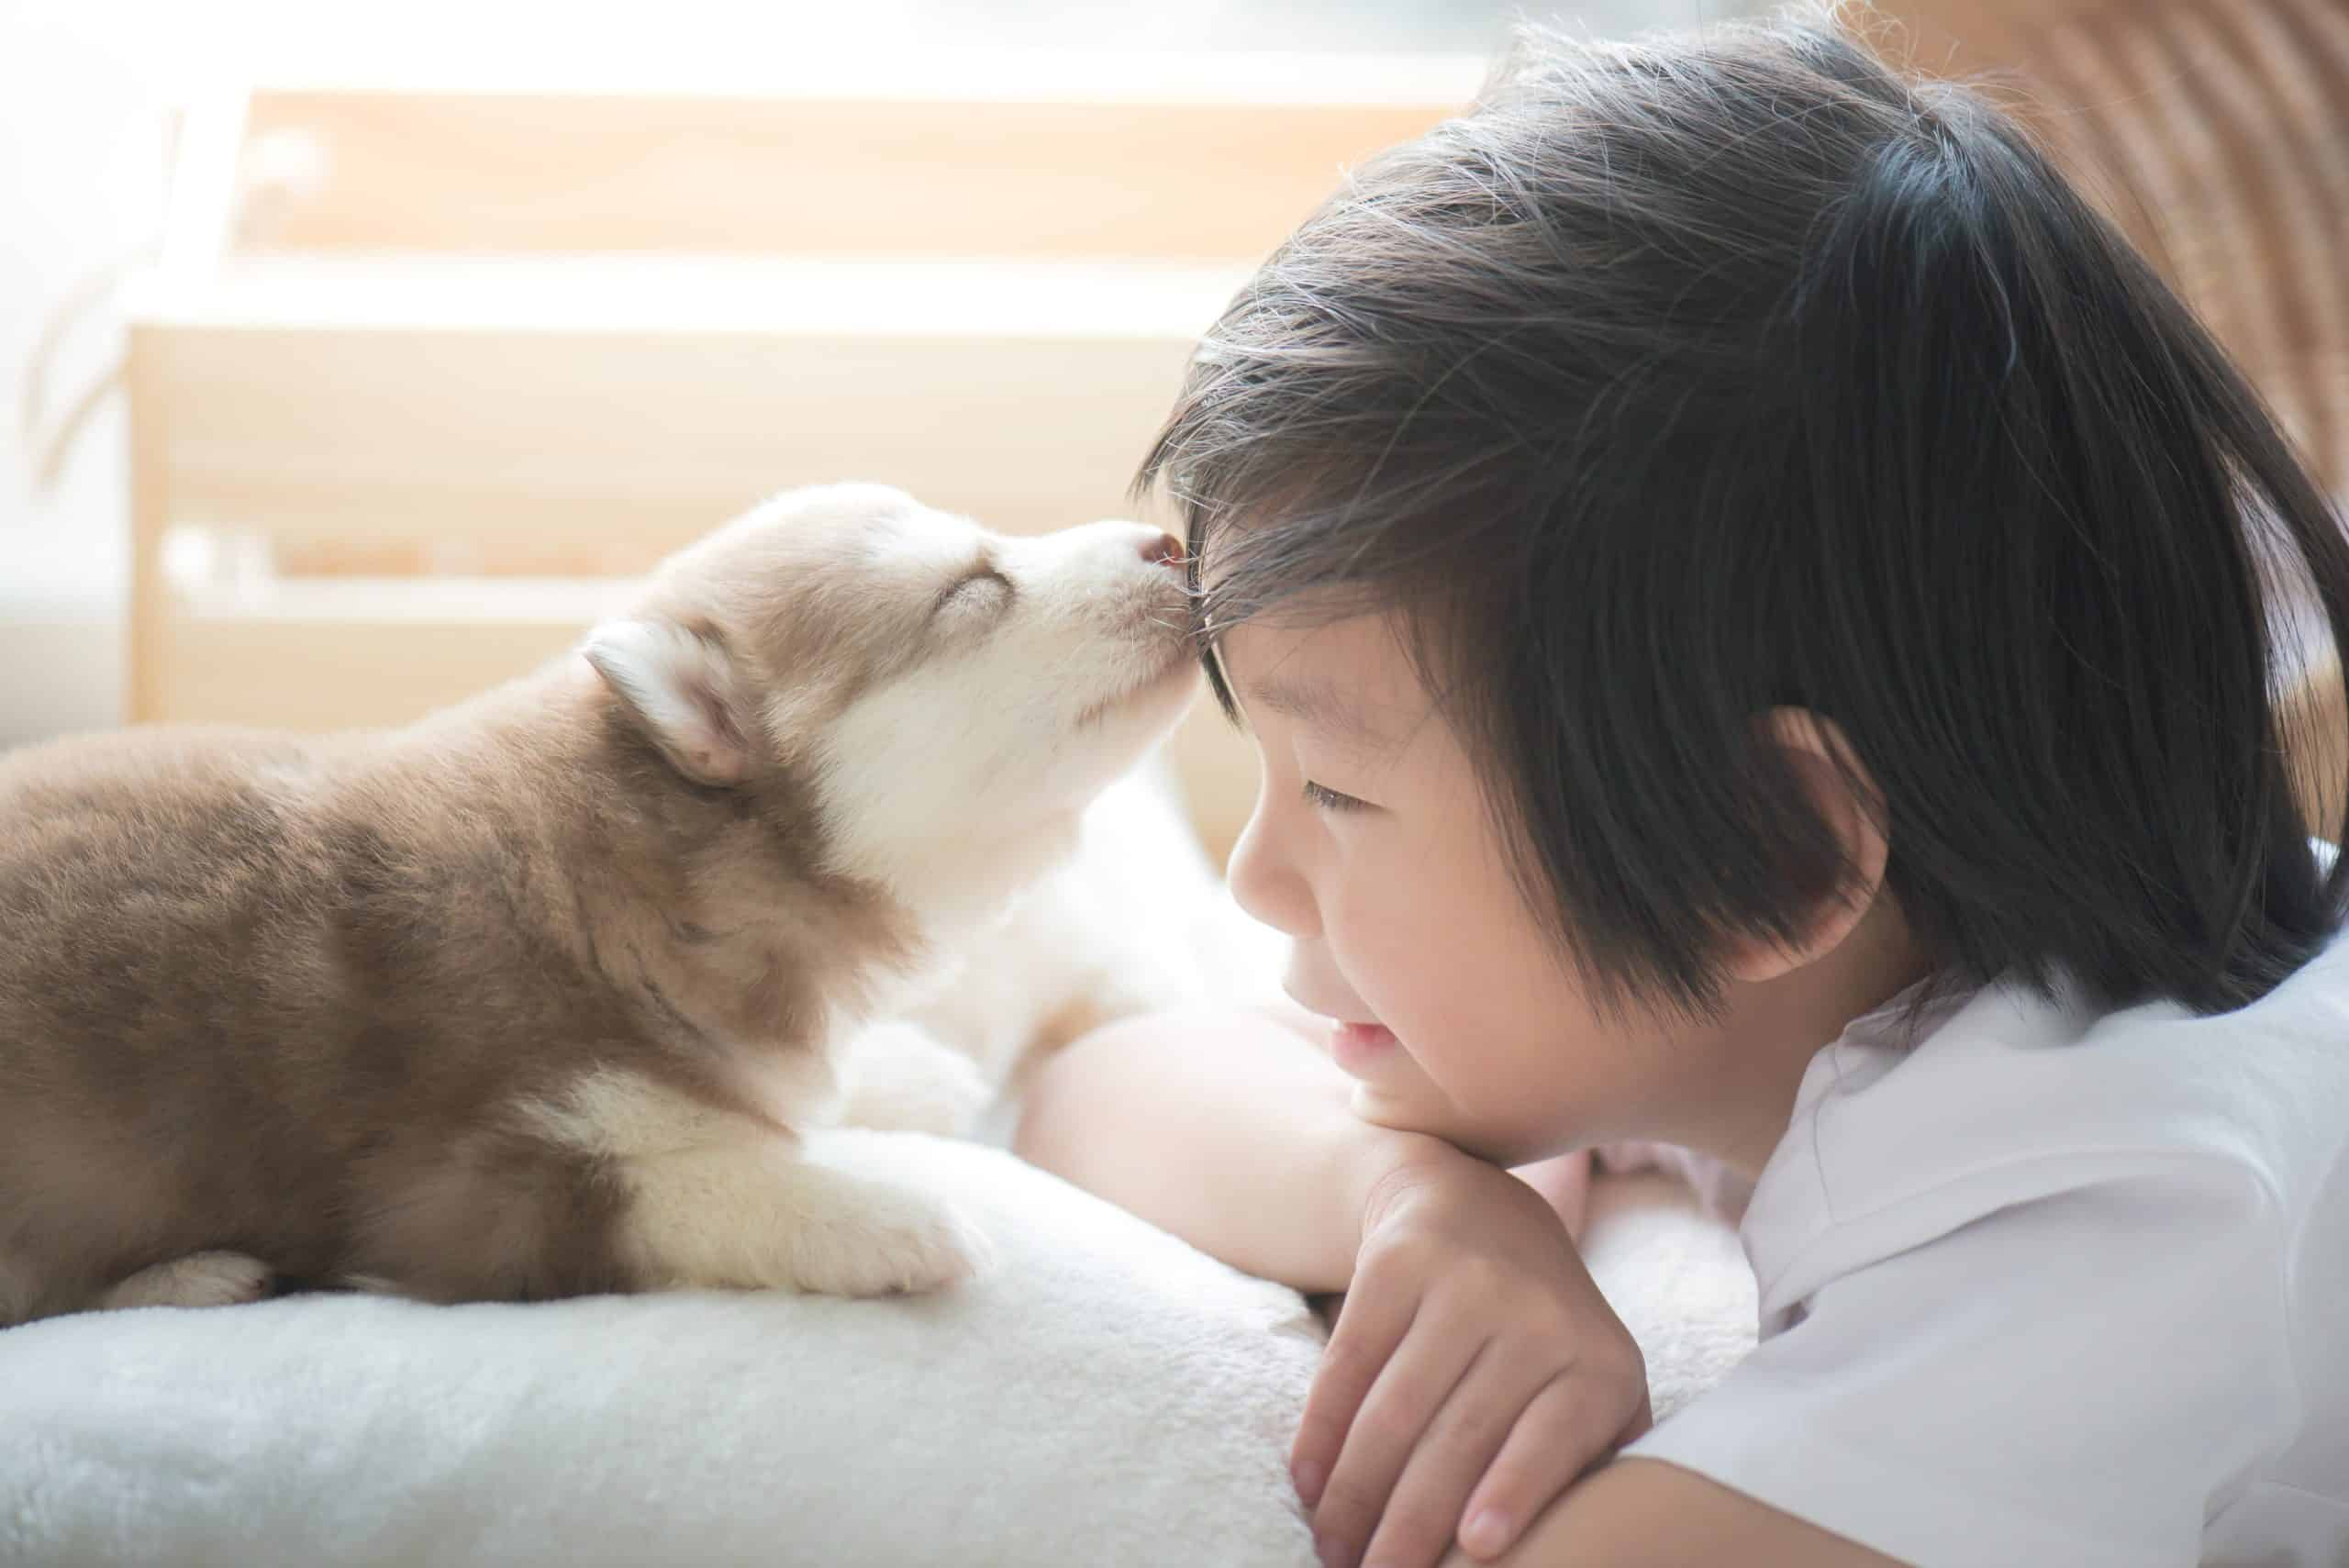 Husky puppy kisses little boy. When you get a child a dog, be sure to supervise all interactions to keep both puppies and children safe.